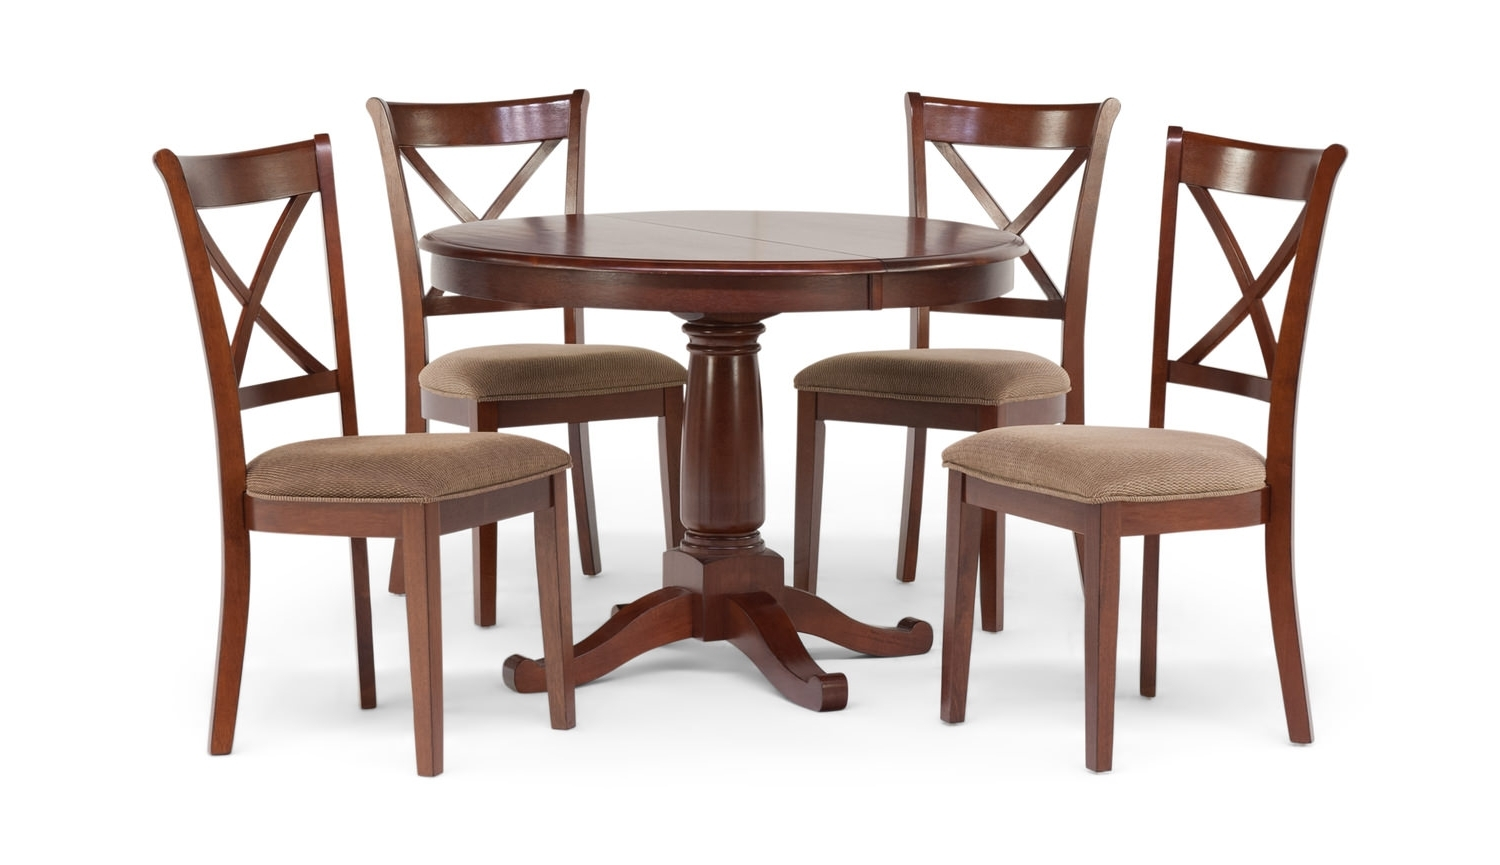 Hom Furniture Intended For Well Liked Caden Rectangle Dining Tables (View 3 of 25)